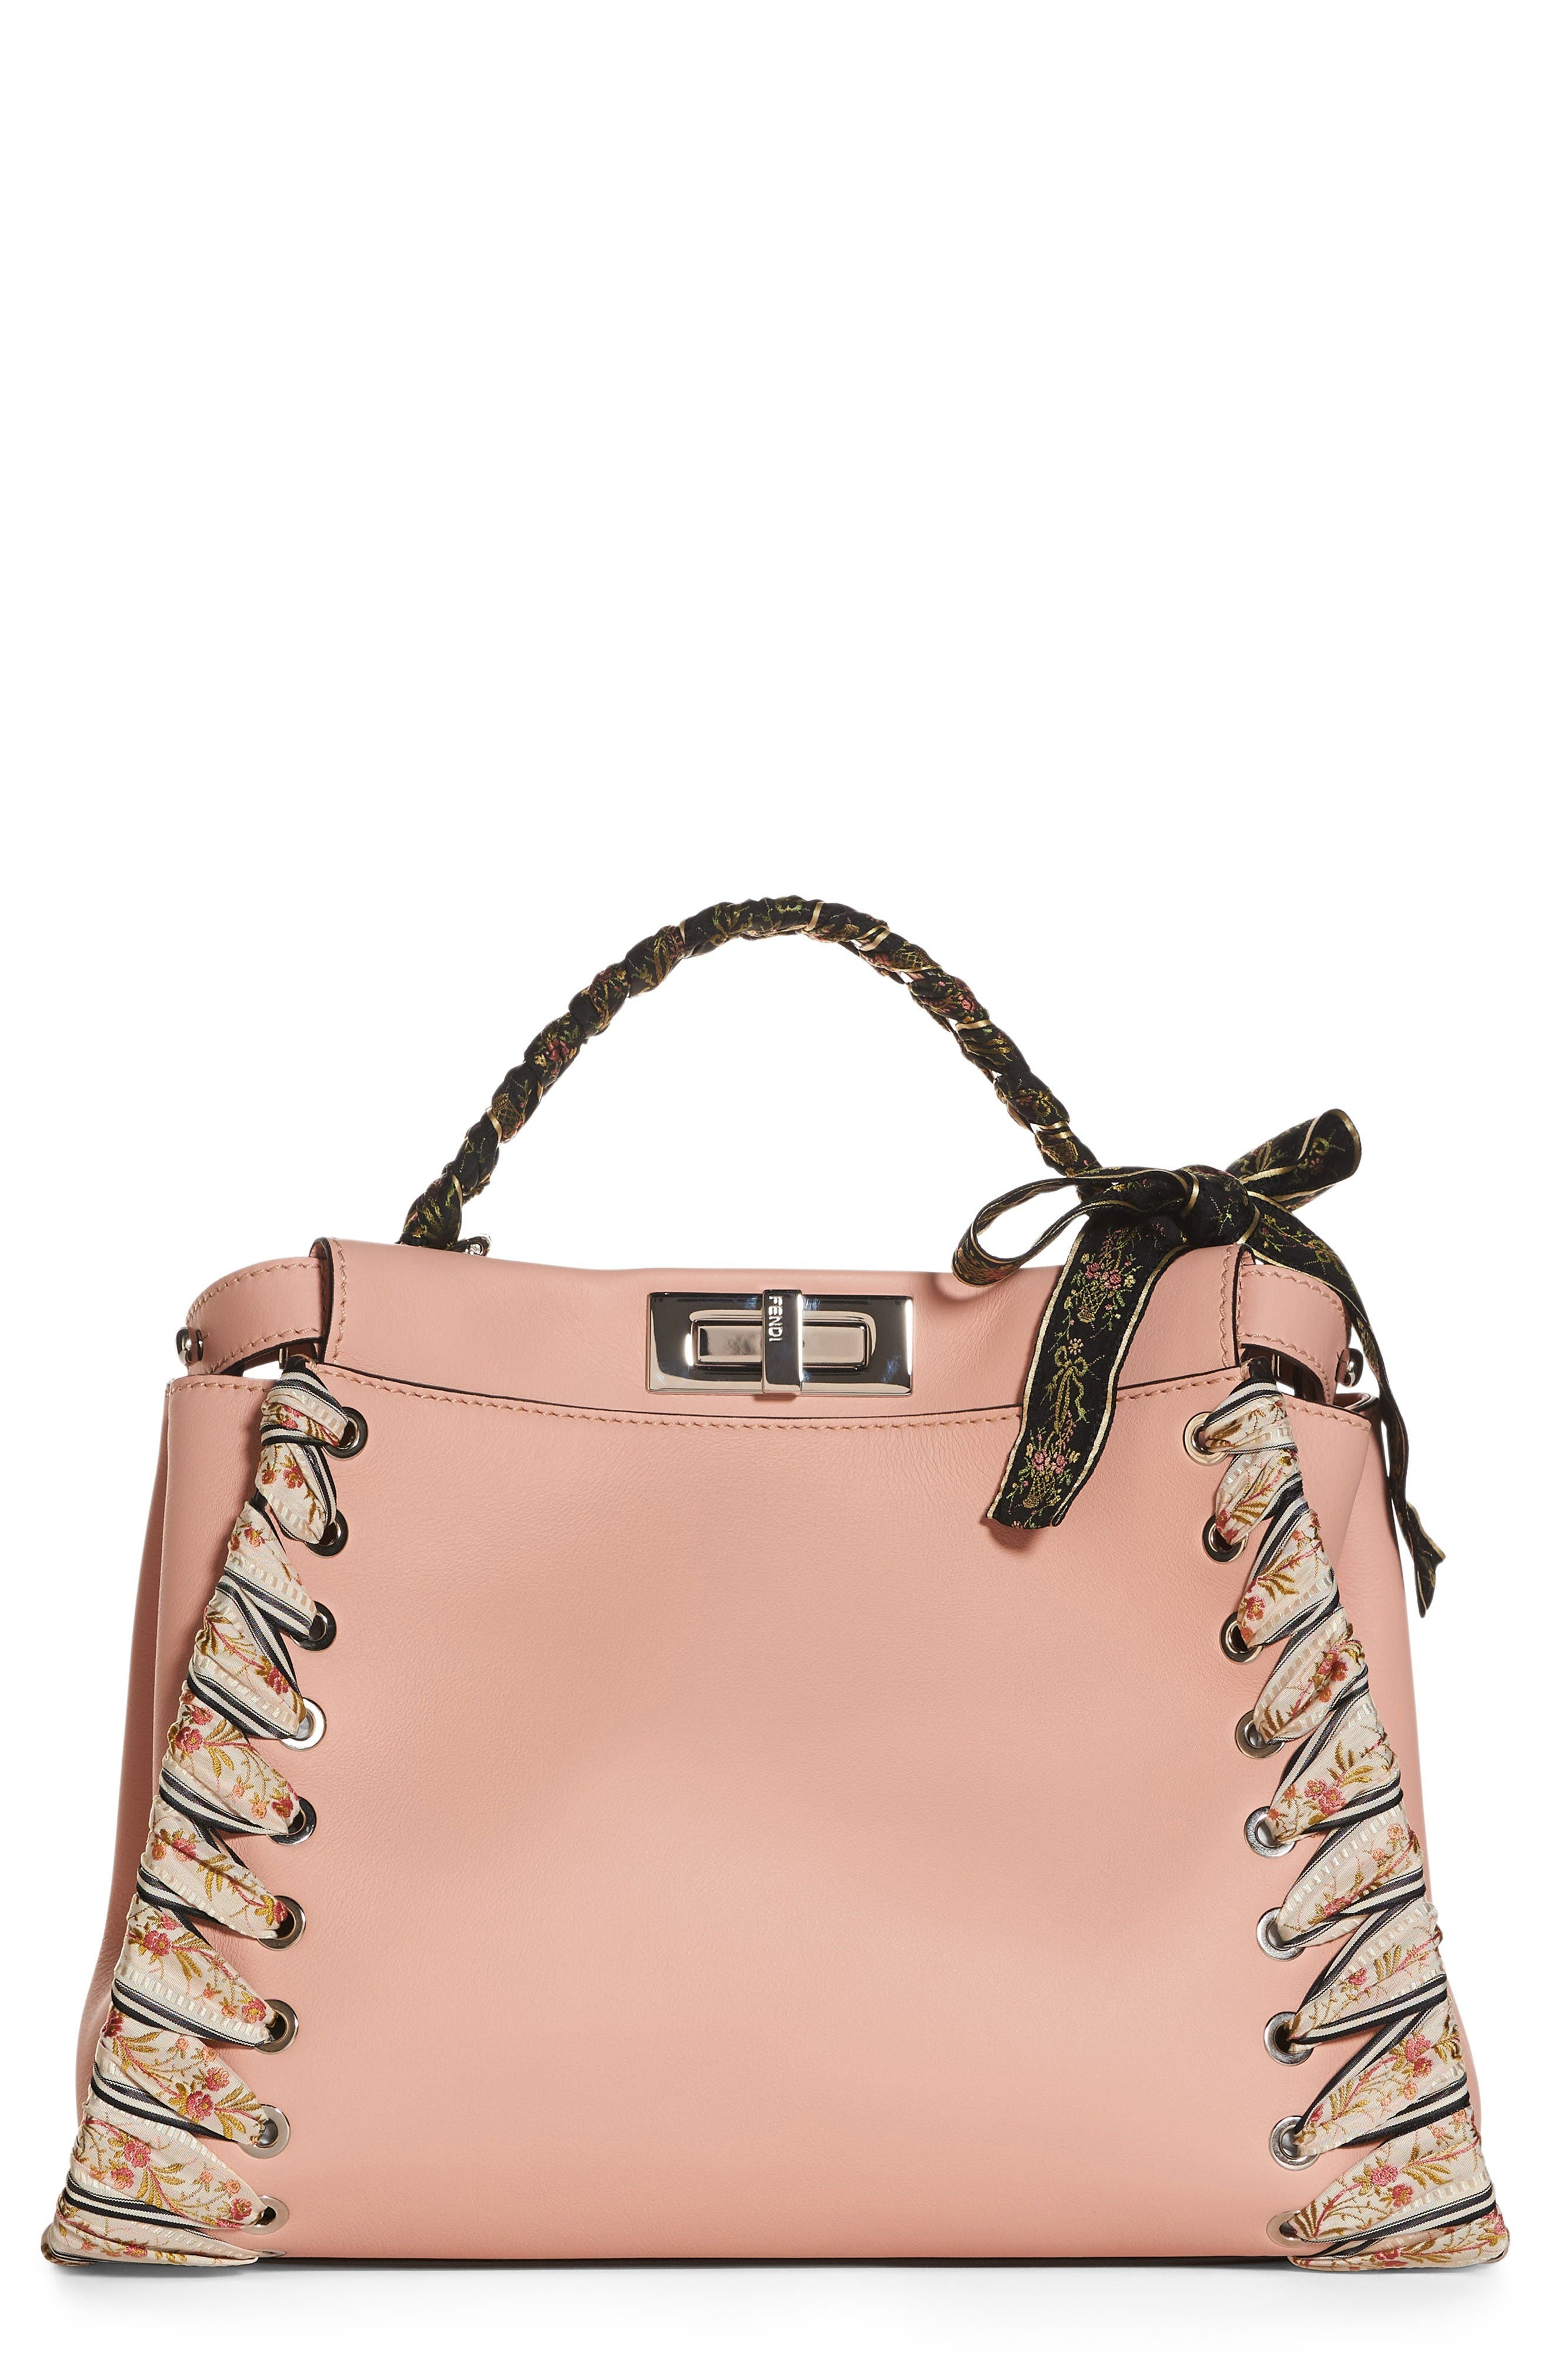 Medium Peekaboo Whipstitched Leather Satchel,                             Main thumbnail 1, color,                             Baby Pink